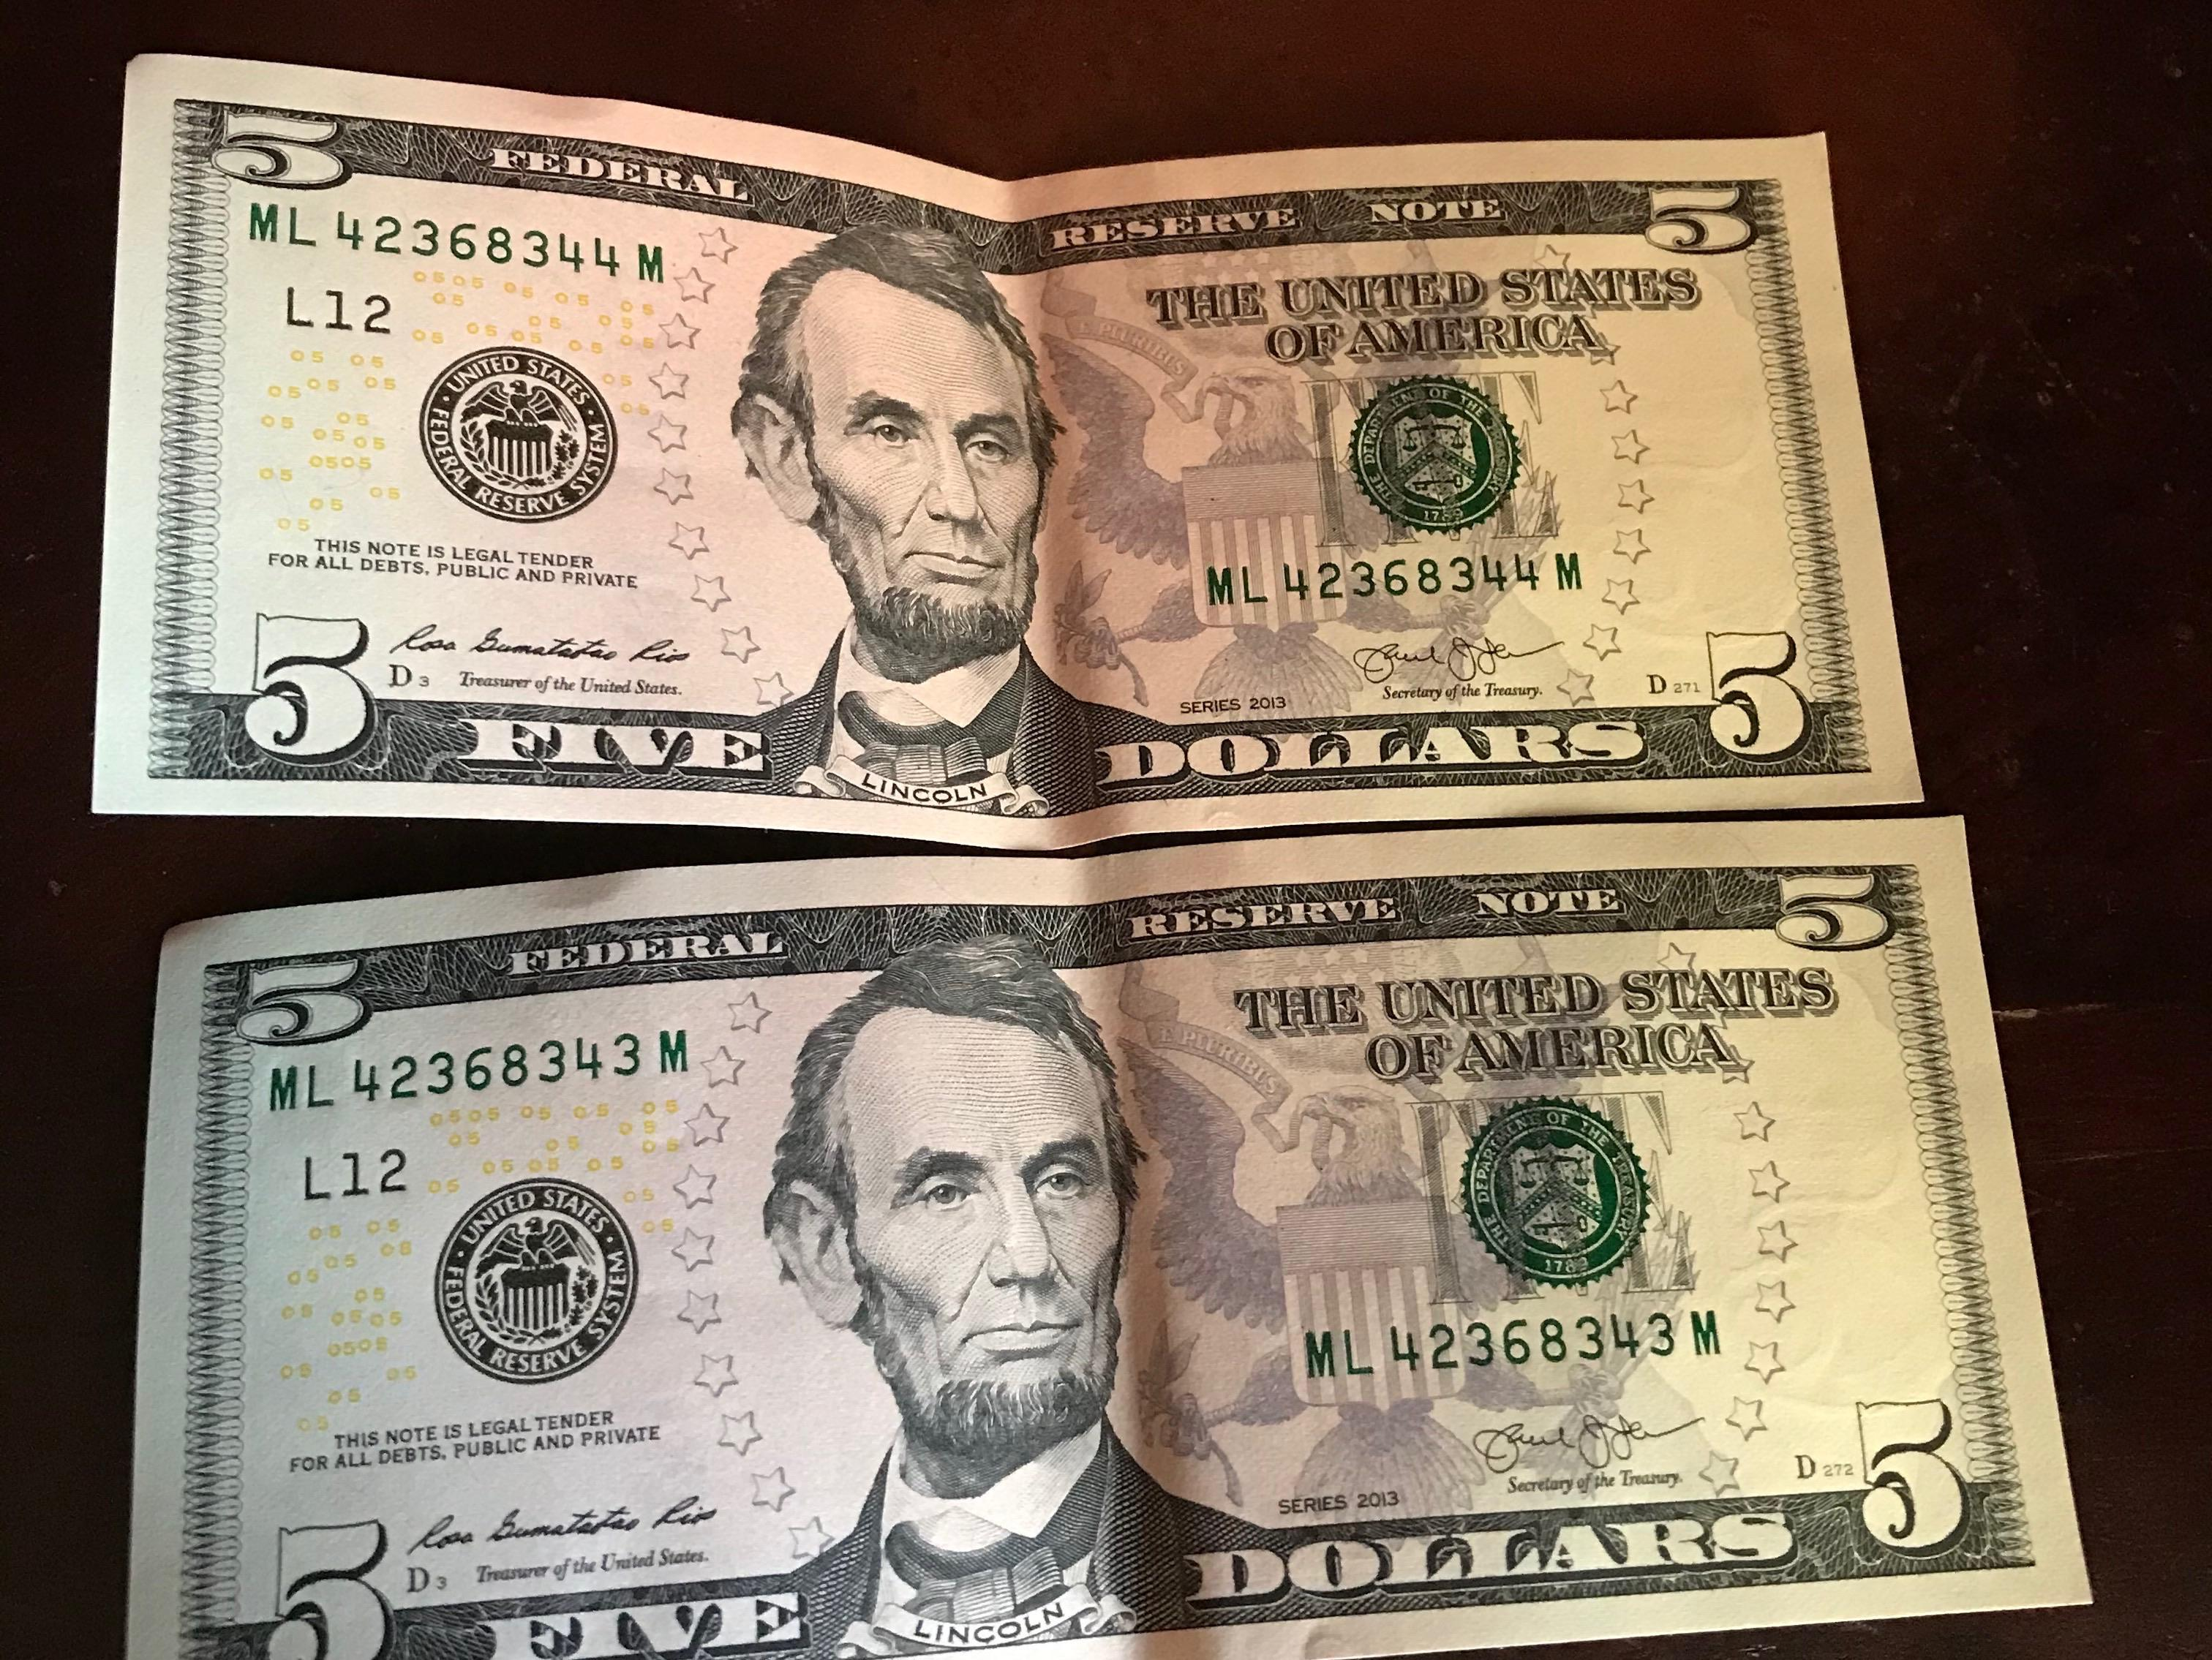 I Have Two 5 Dollar Bills With Close To Matching Bill